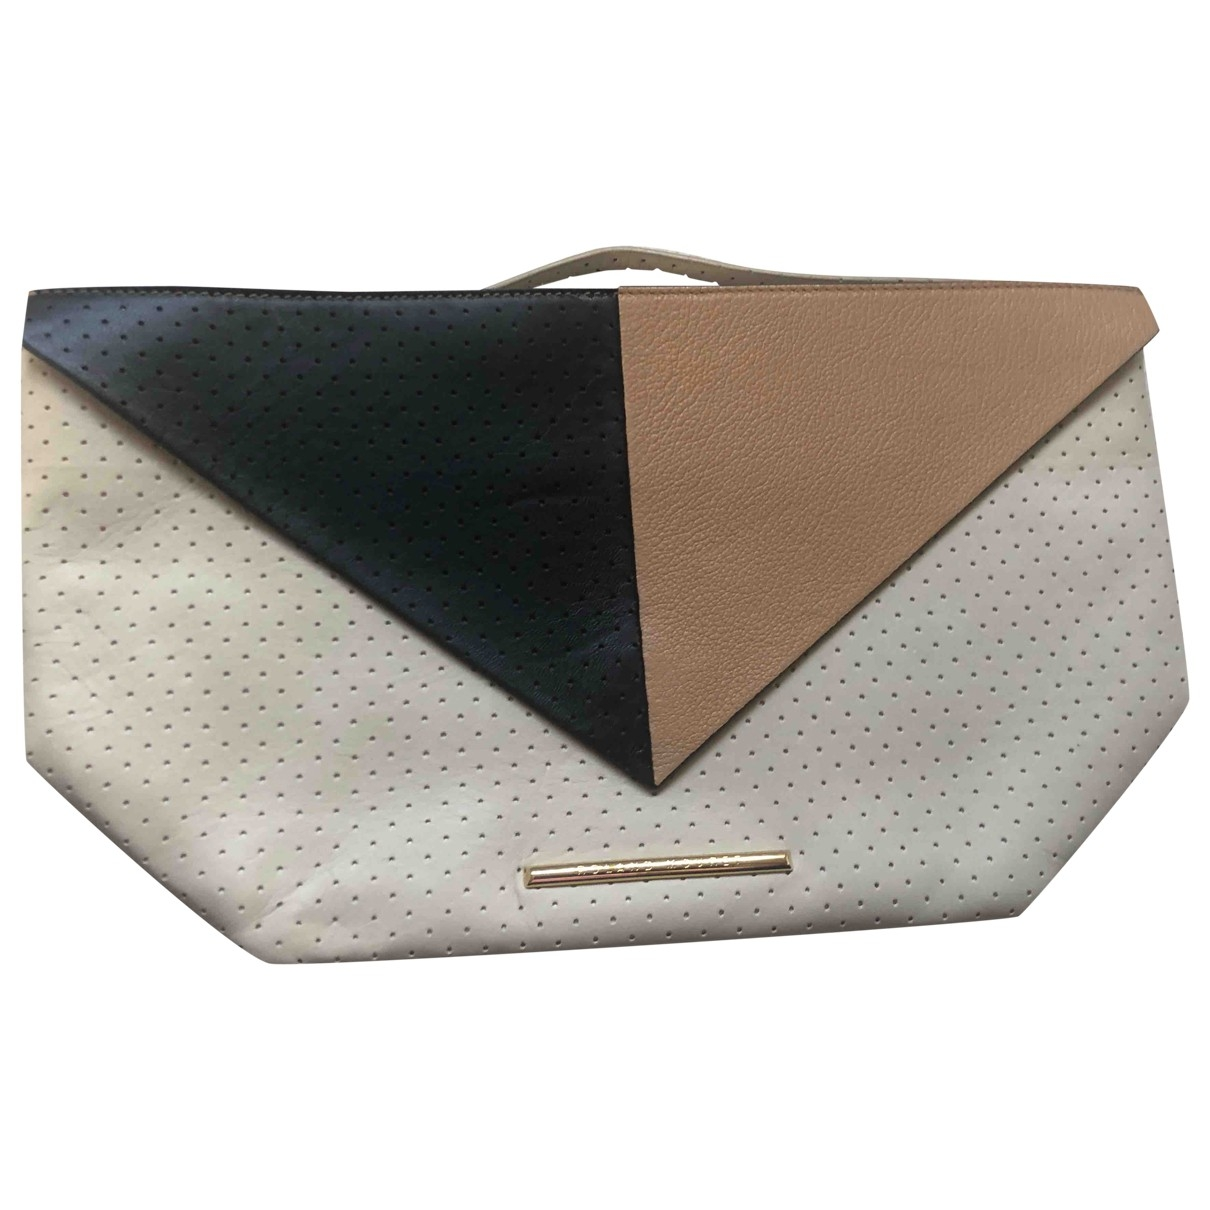 Roland Mouret \N Multicolour Leather Clutch bag for Women \N